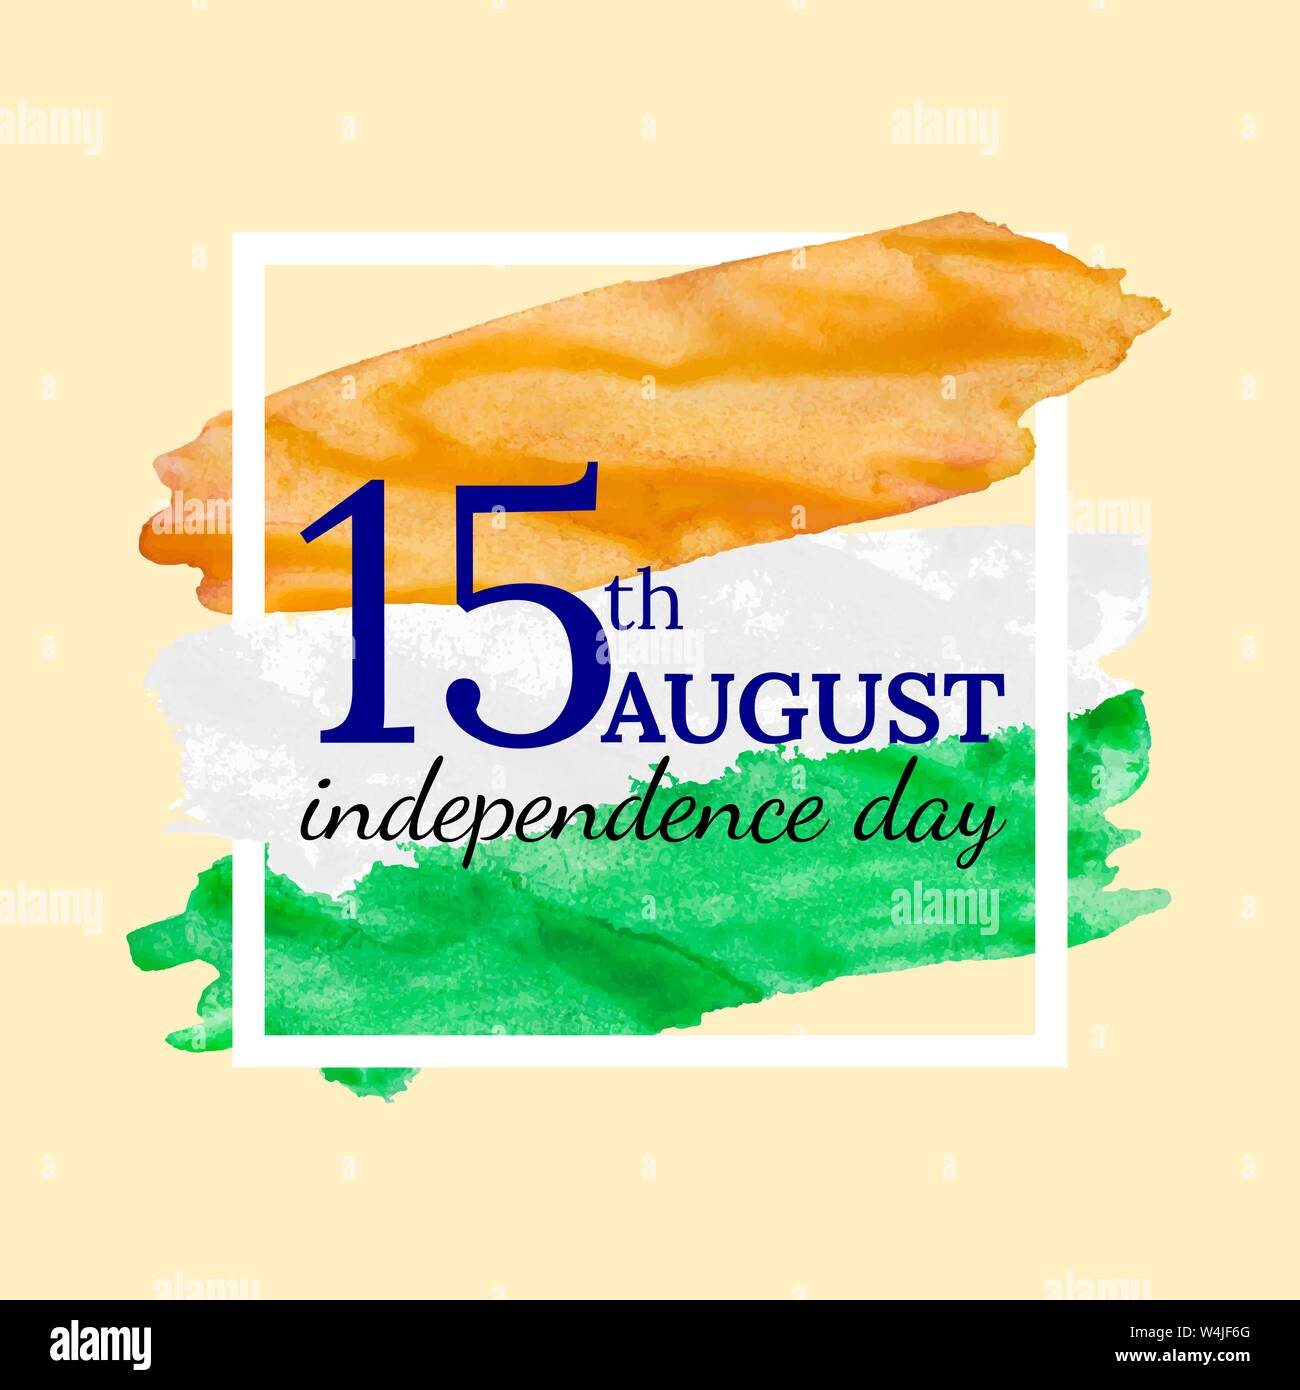 Happy Independence Day 15th August India With Colors Of